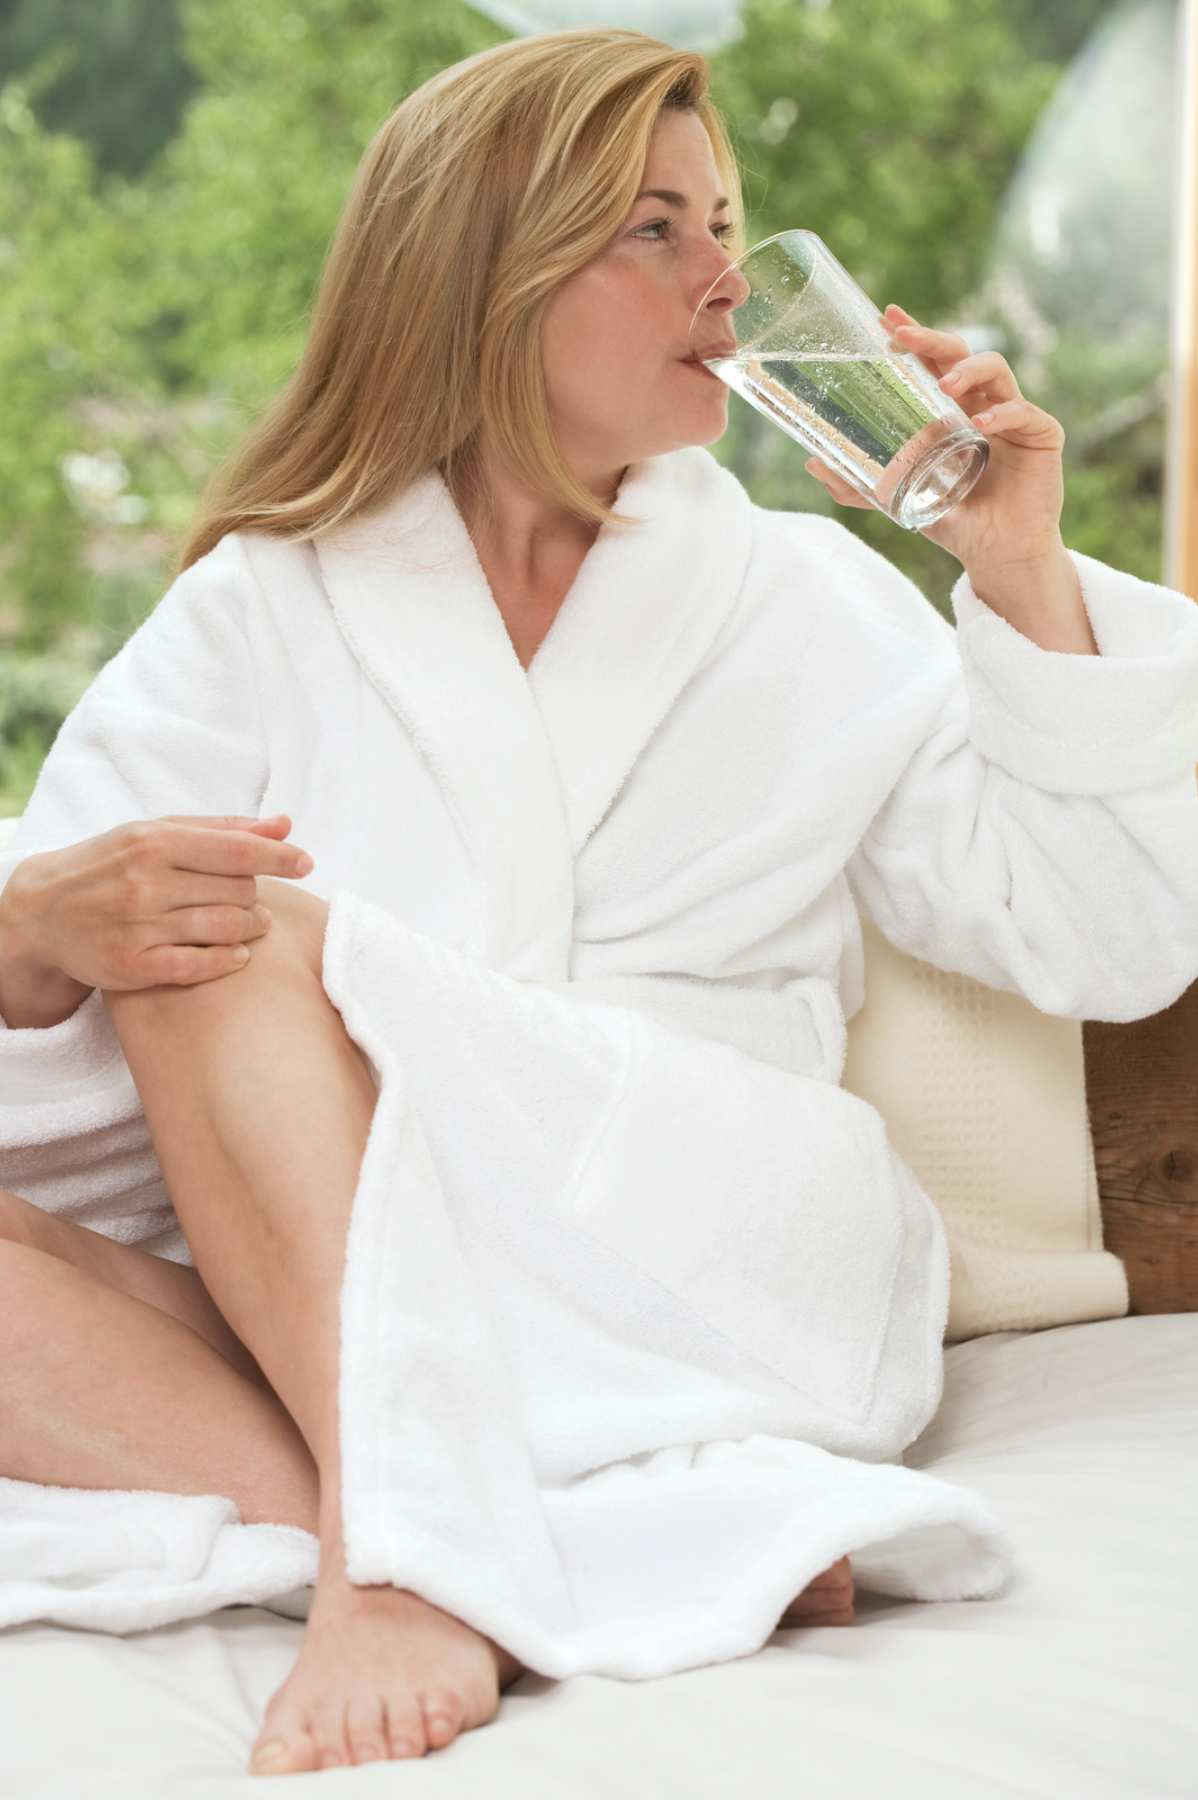 Woman in a white robe drinking water